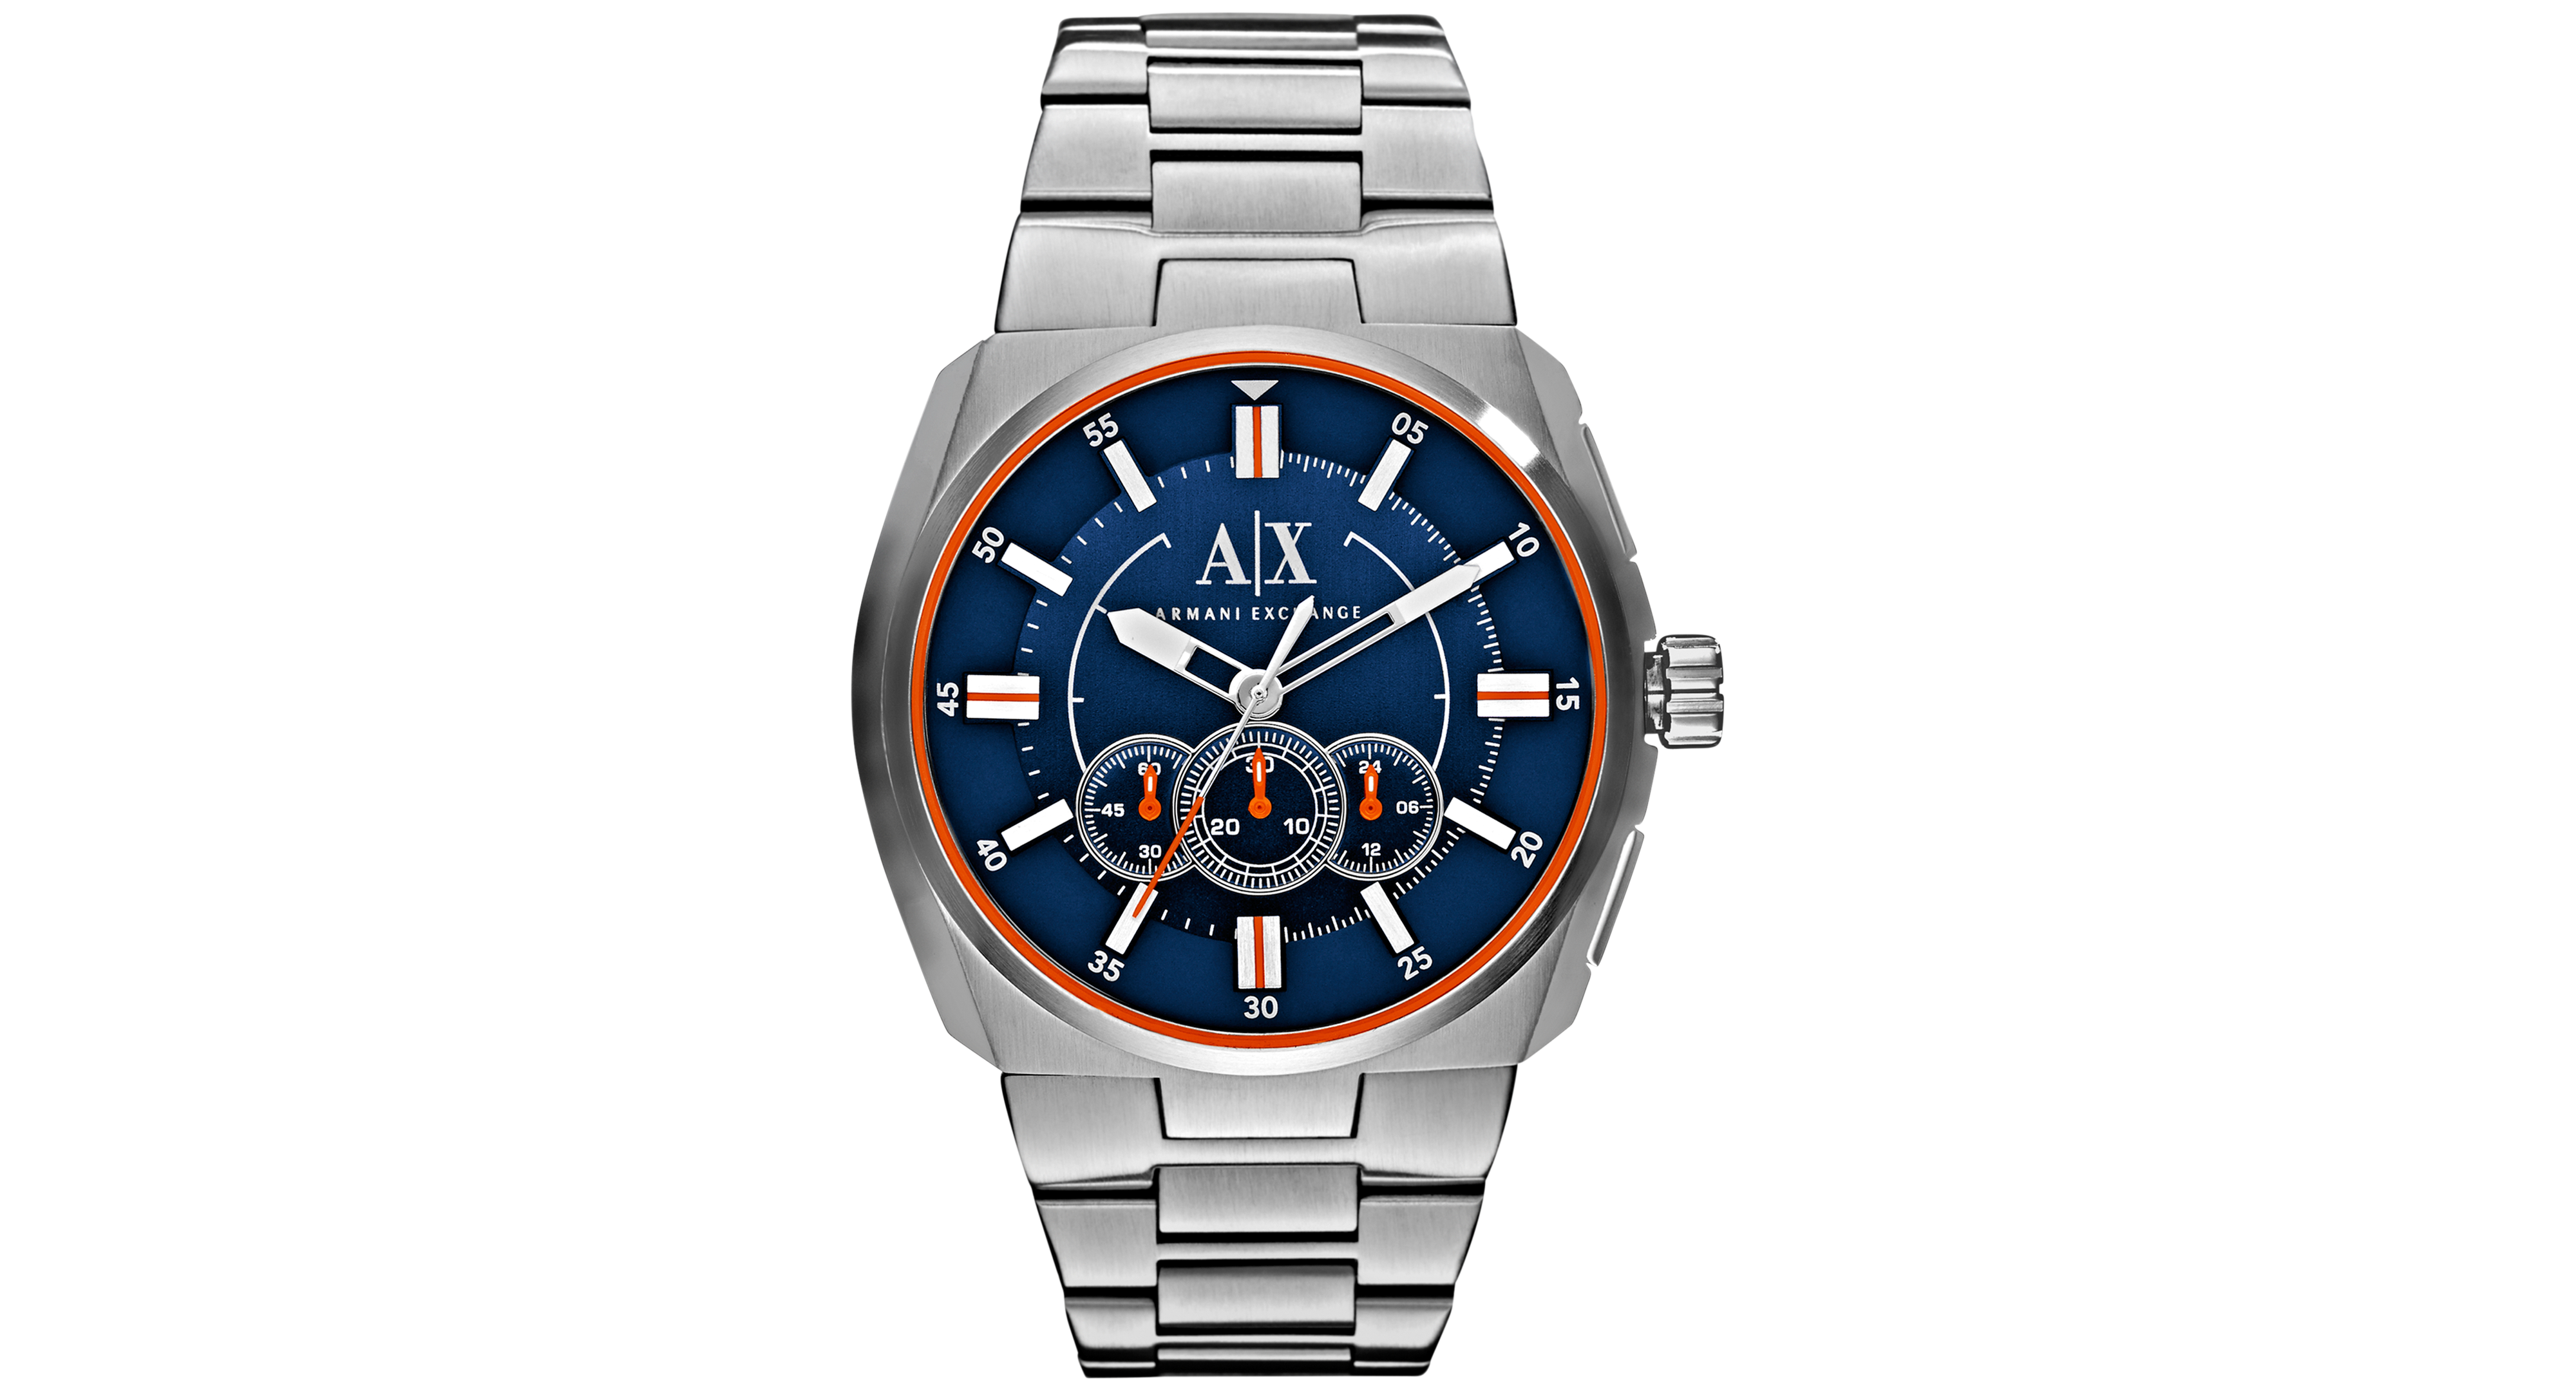 Ax armani exchange menus chronograph stainless steel bracelet watch